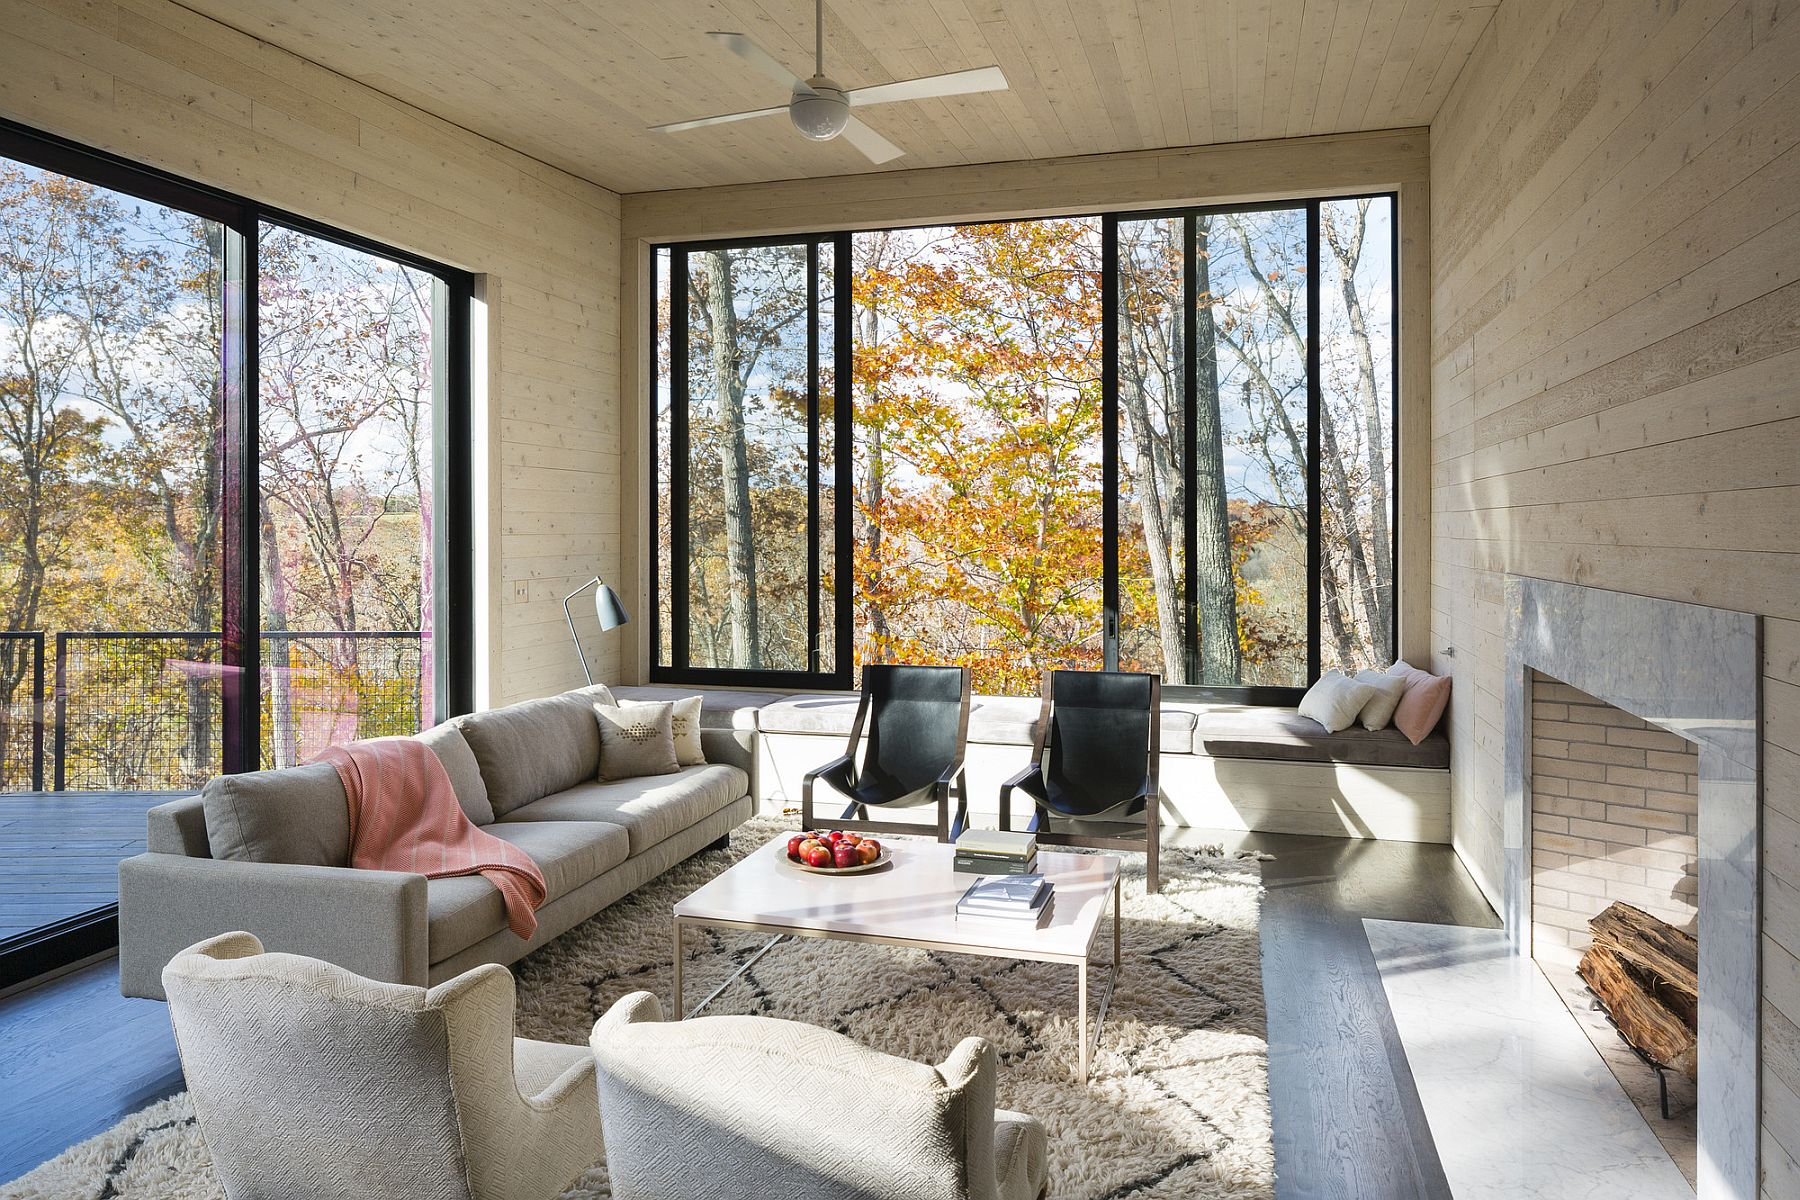 Woods outside become a part of the living room visual